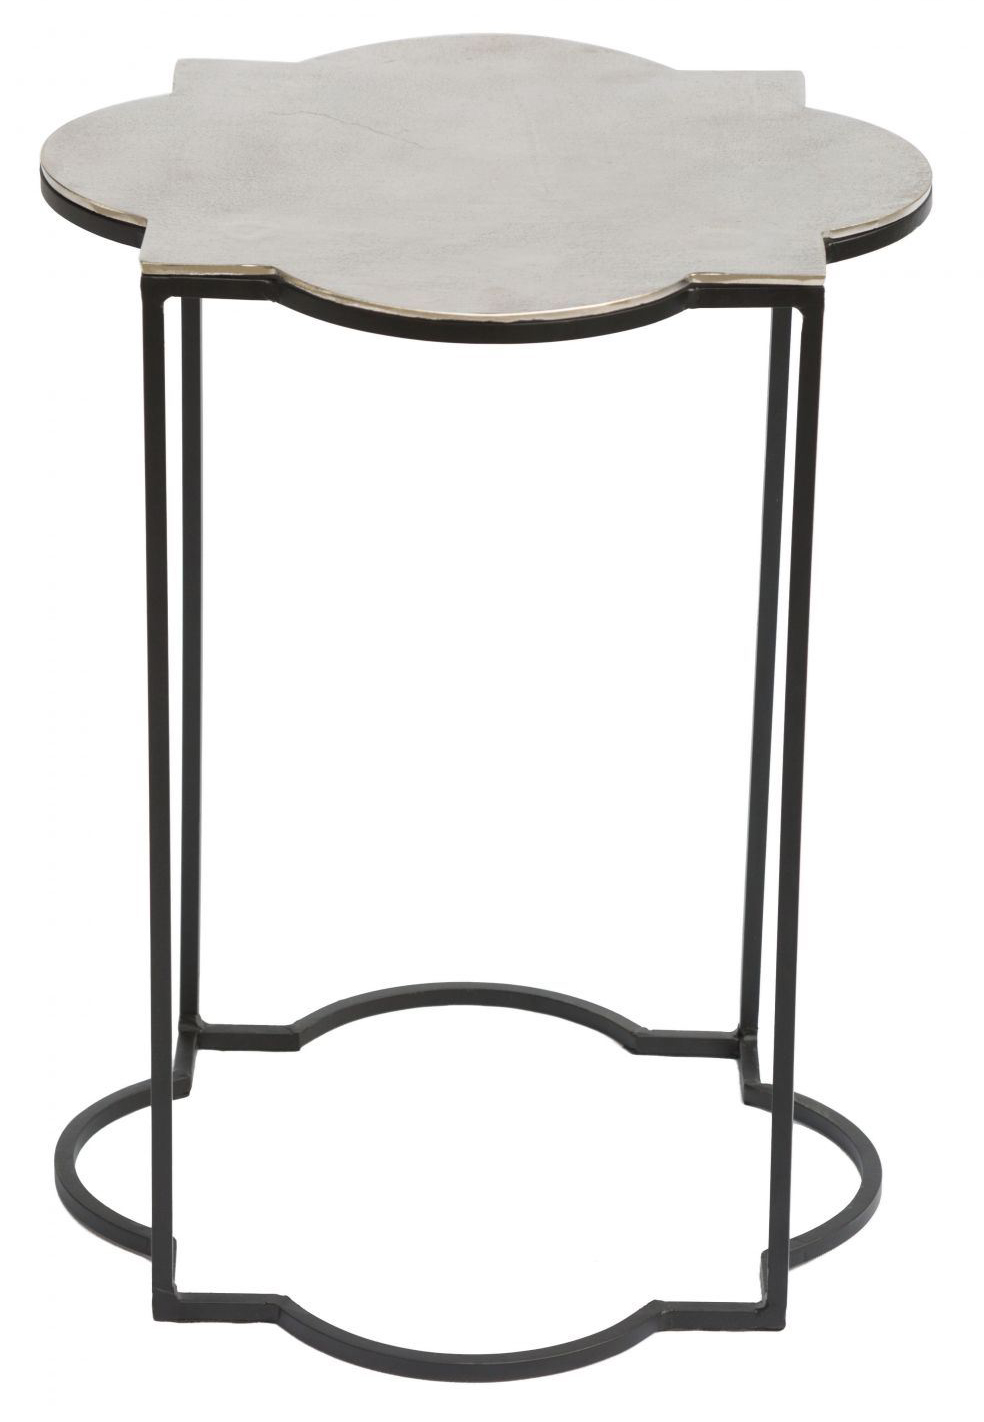 zuo brighton accent table black white